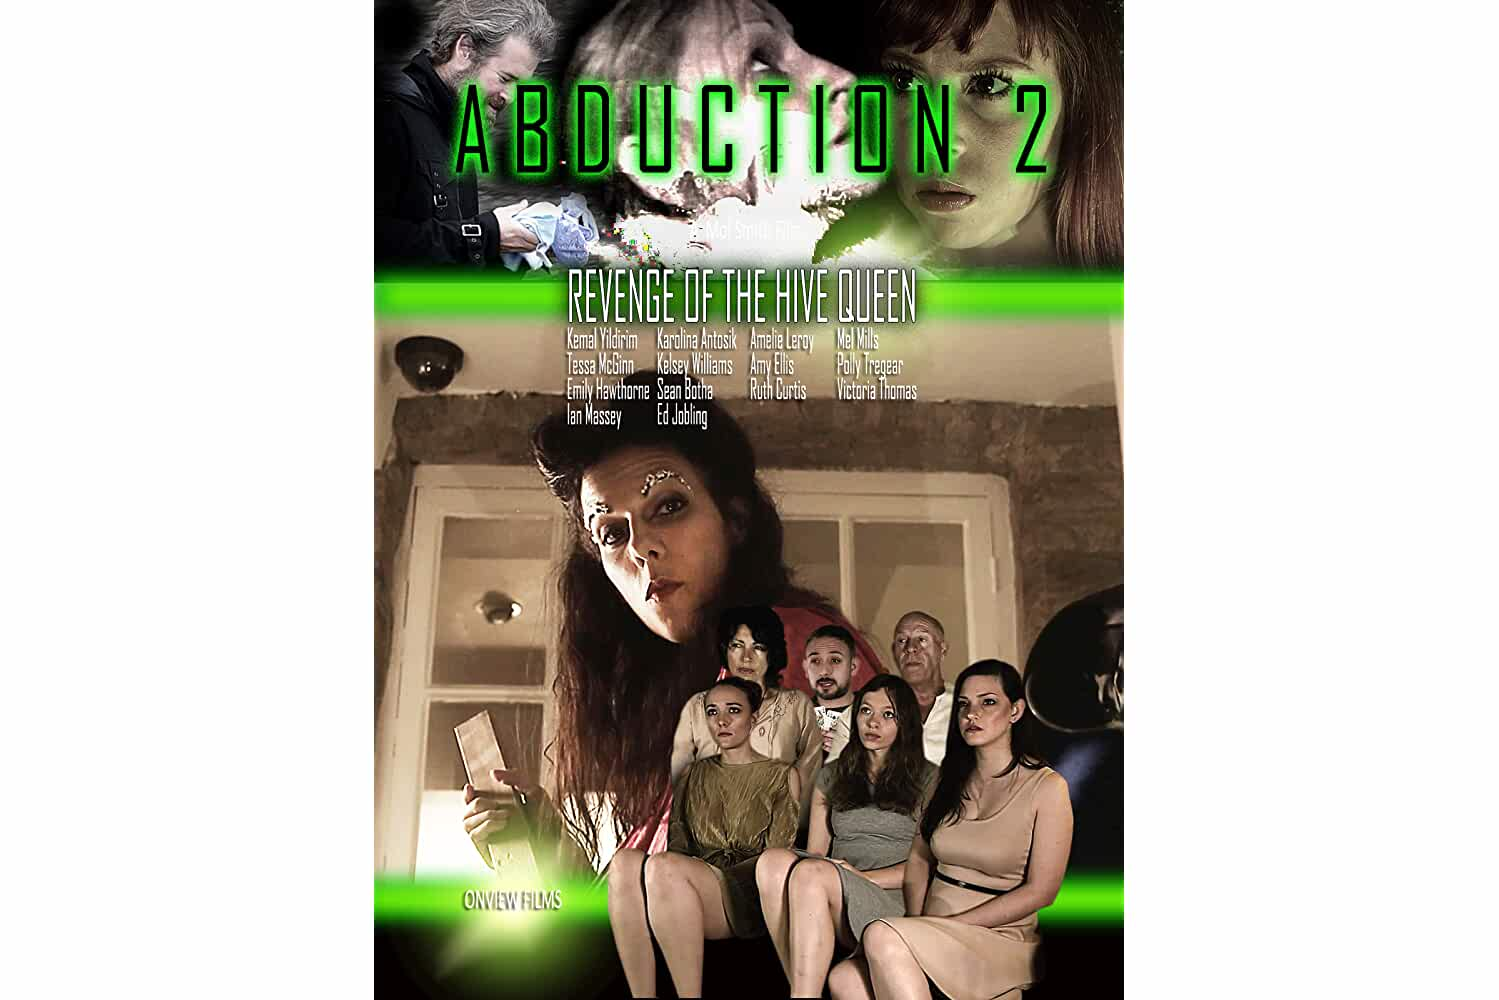 Abduction 2: Revenge of the Hive Queen (2018)